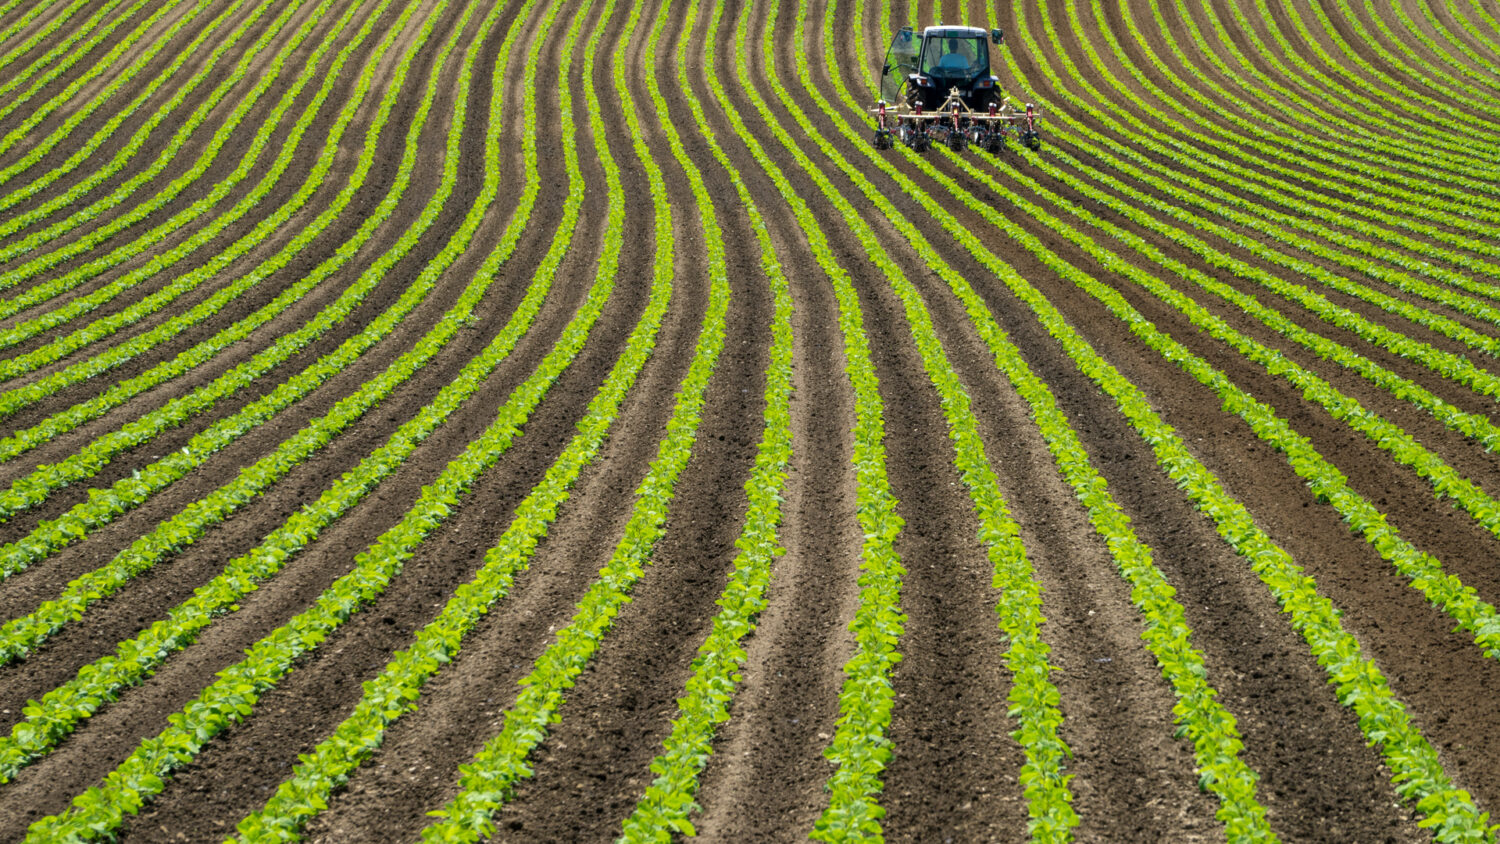 Ivy Endowment Veterans Plant Stake in Agriculture Real Assets Fund